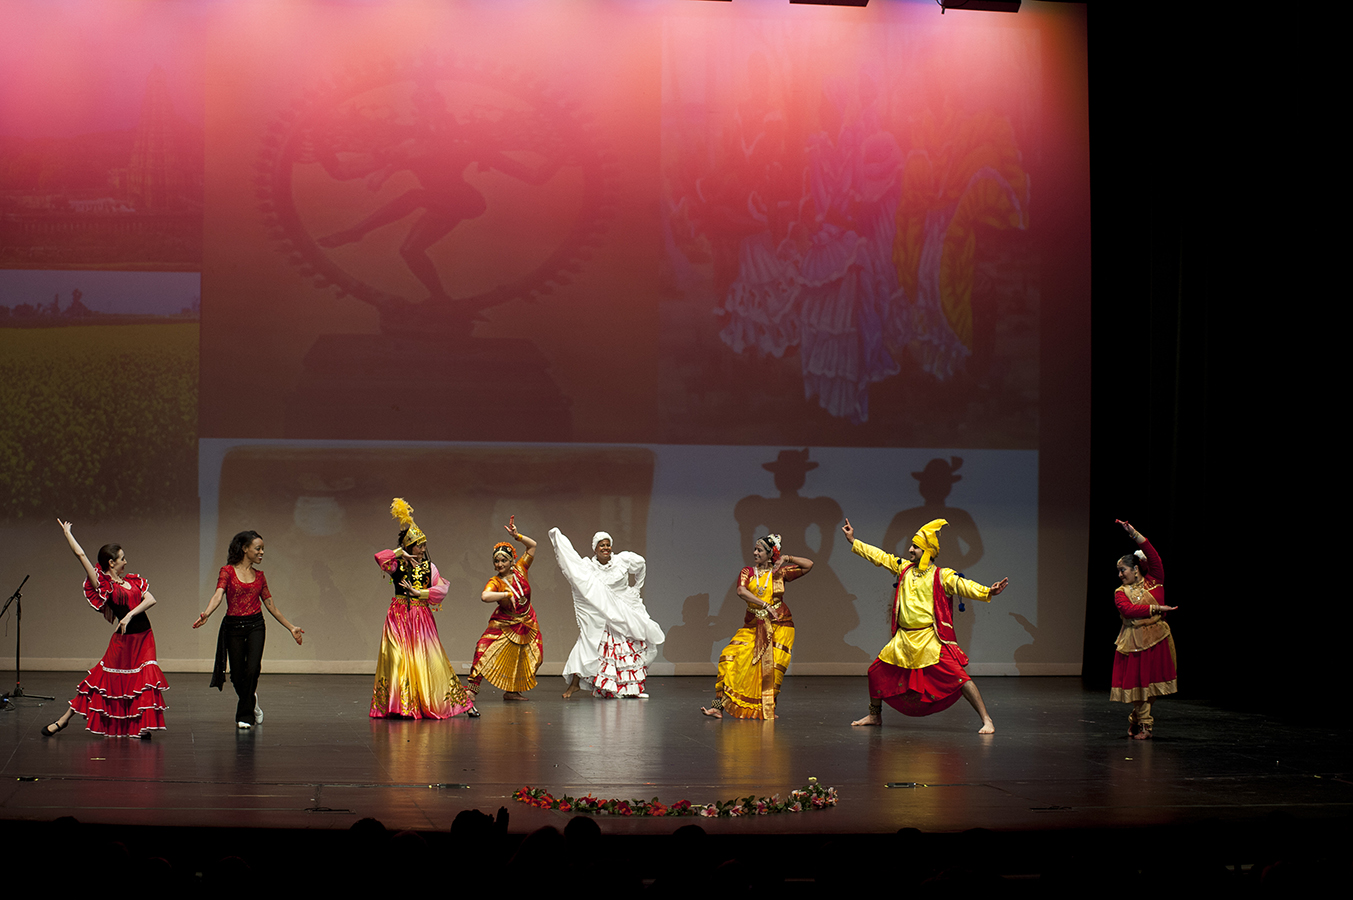 Dances of India stage